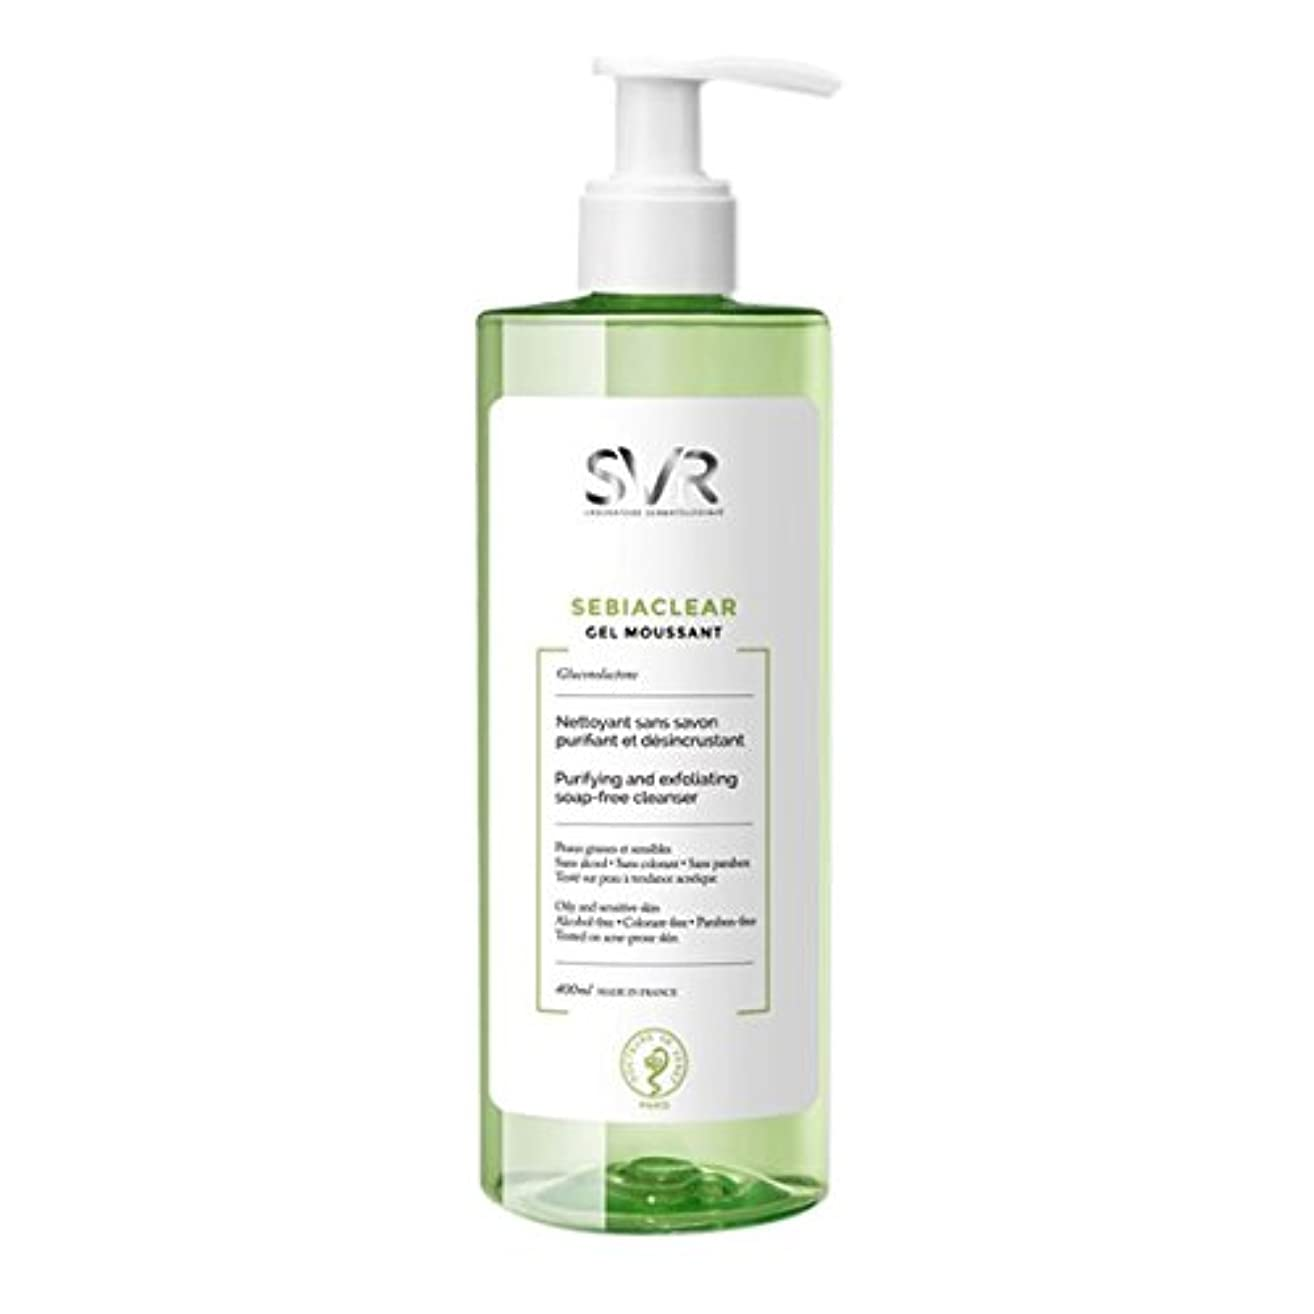 Svr Sebiaclear Purifying And Exfoliating Cleanser 400ml [並行輸入品]